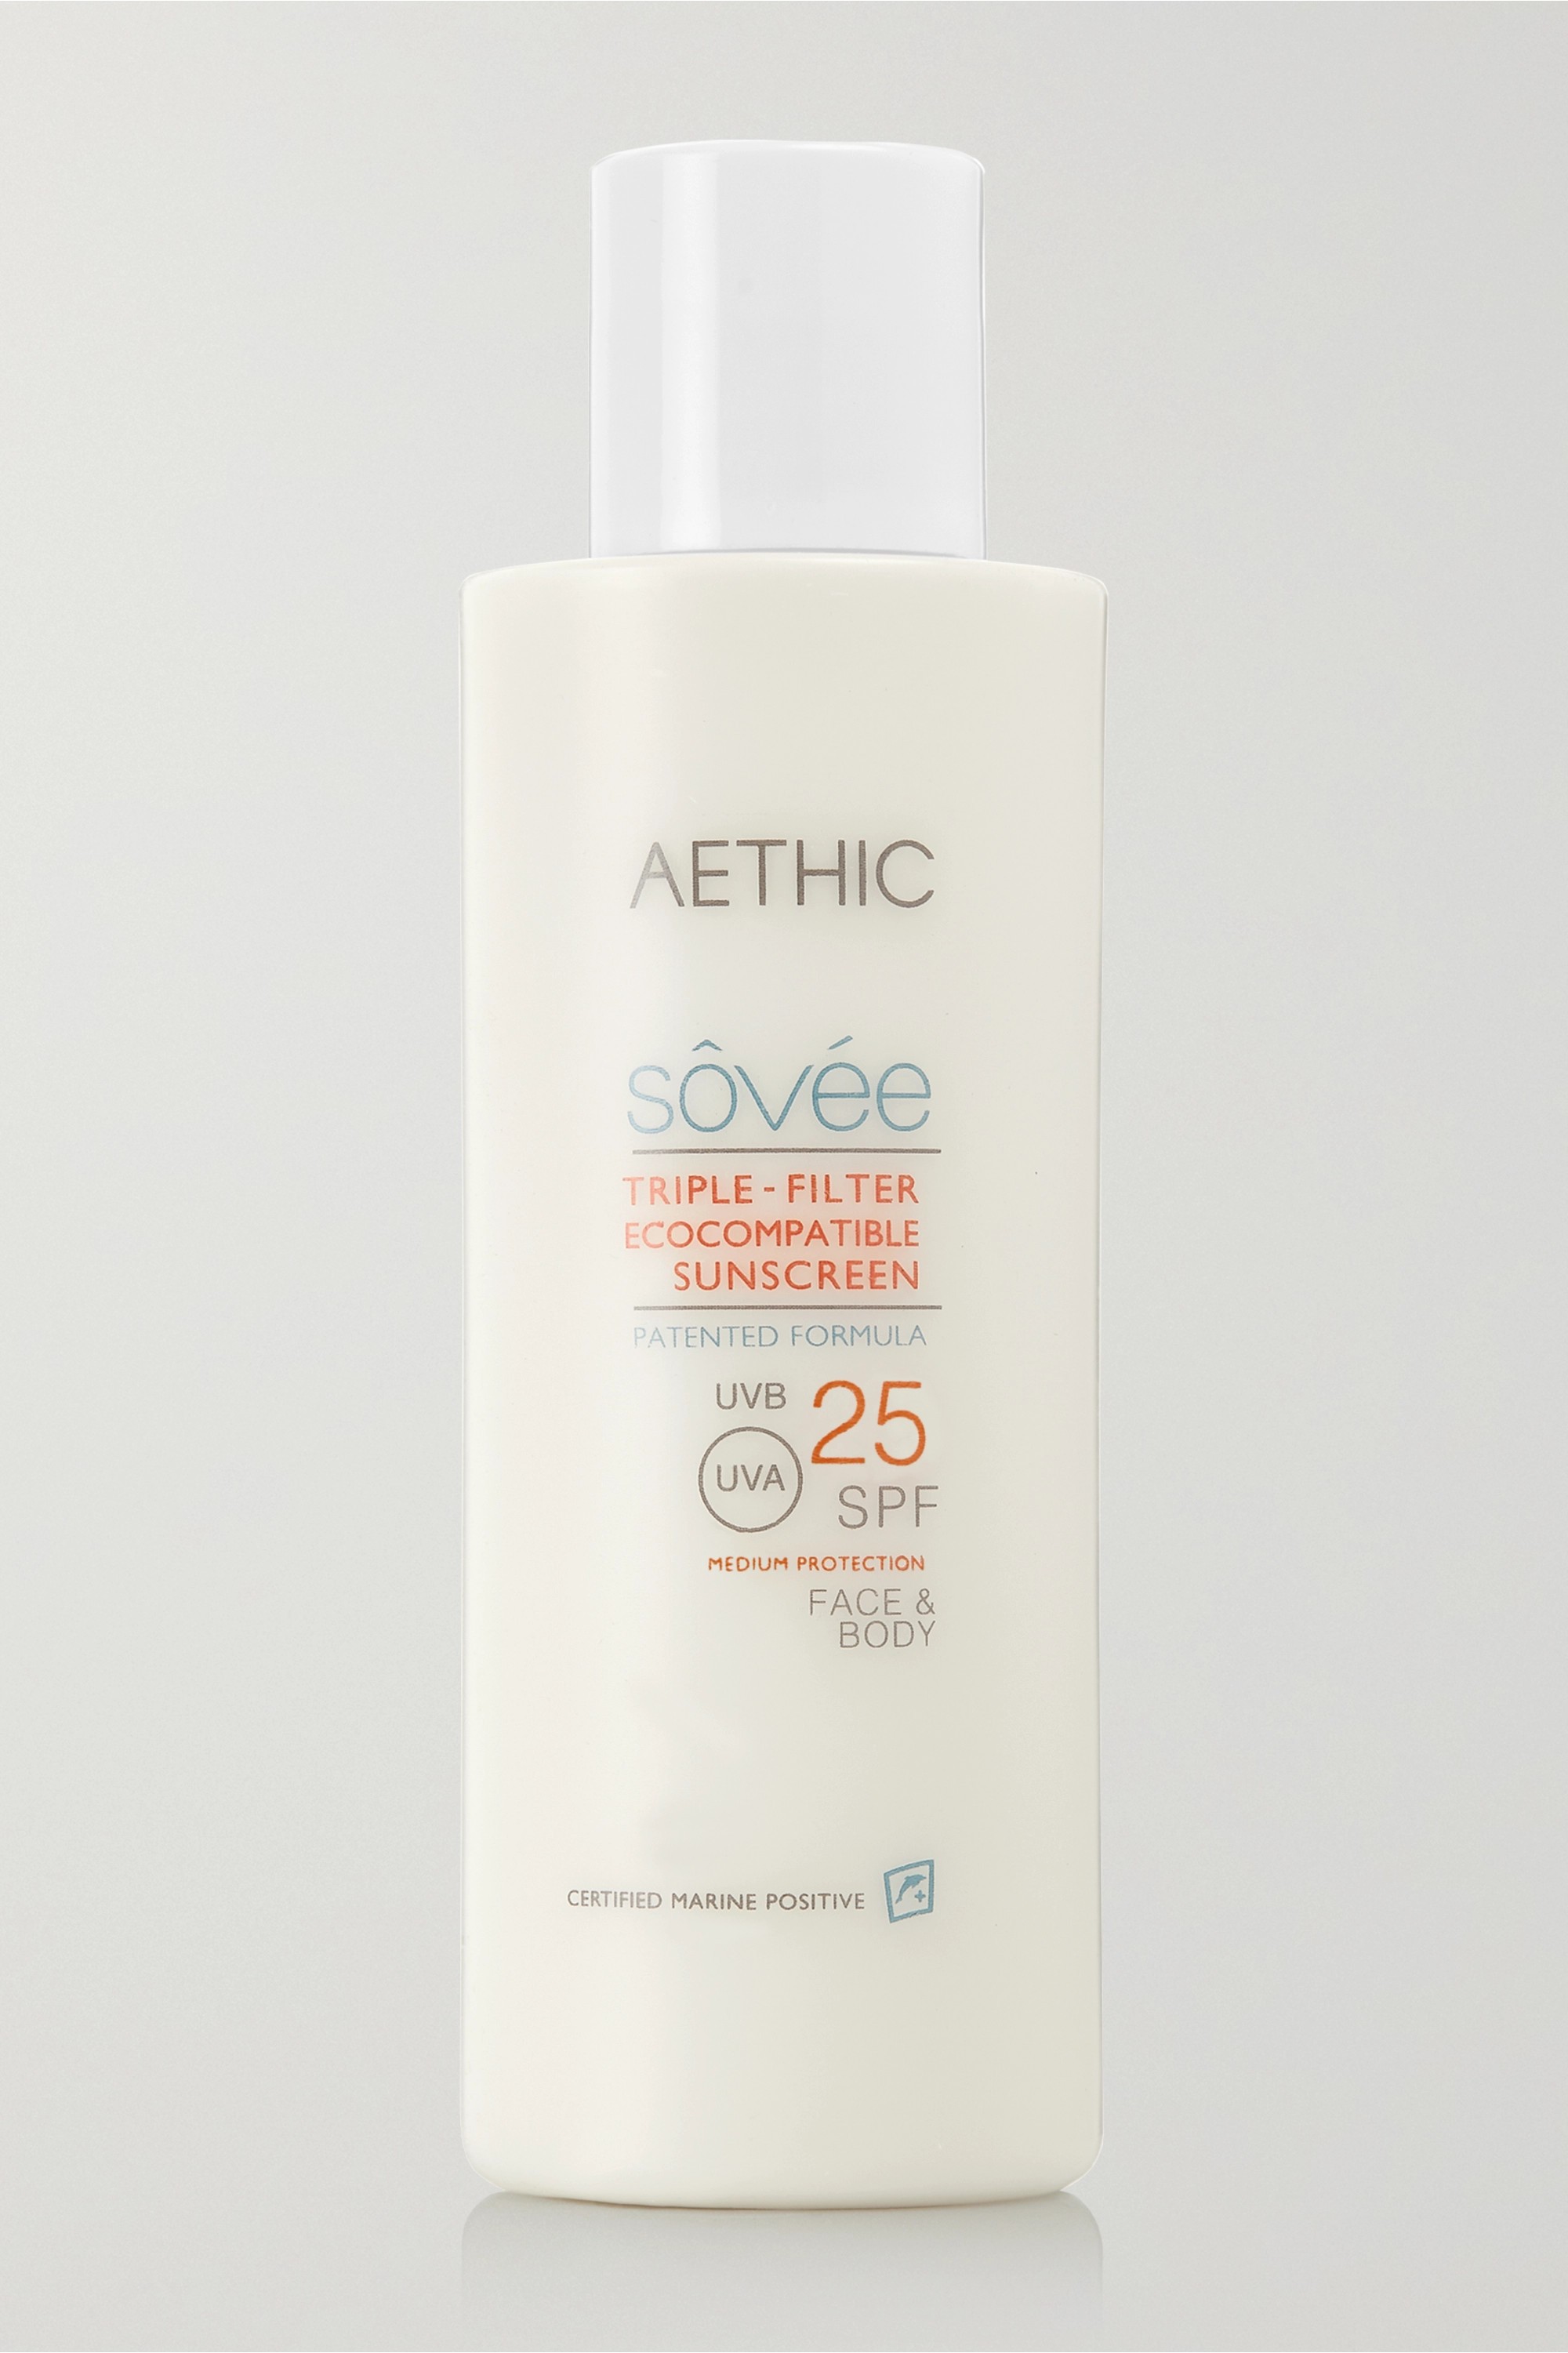 Aethic Triple-Filter Ecocompatible Sunscreen SPF25, 150ml